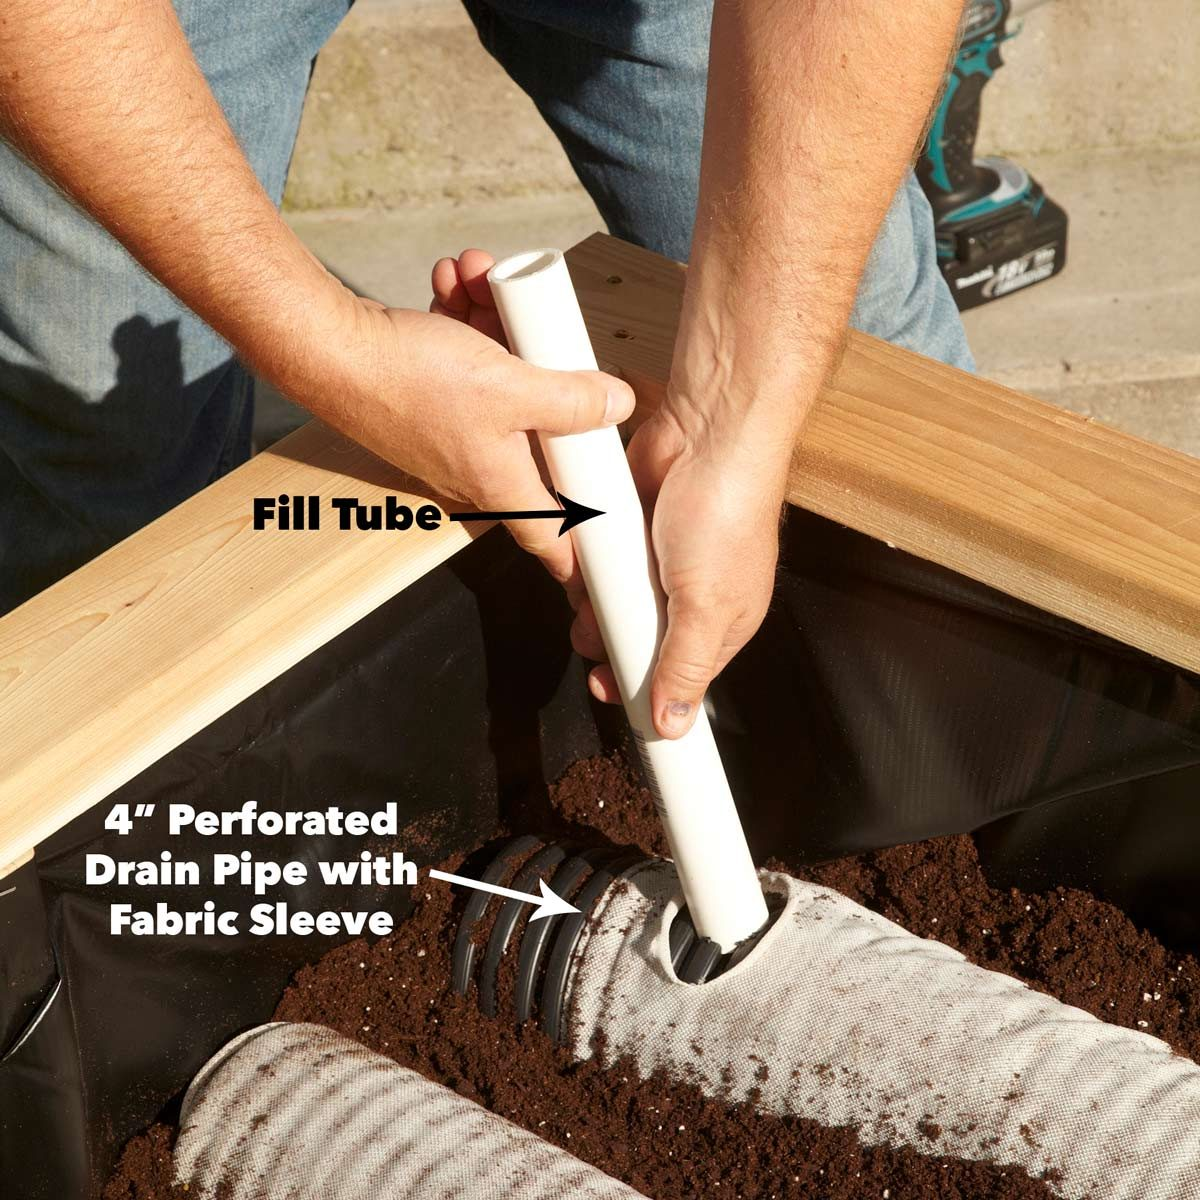 drain pipe and fill tube